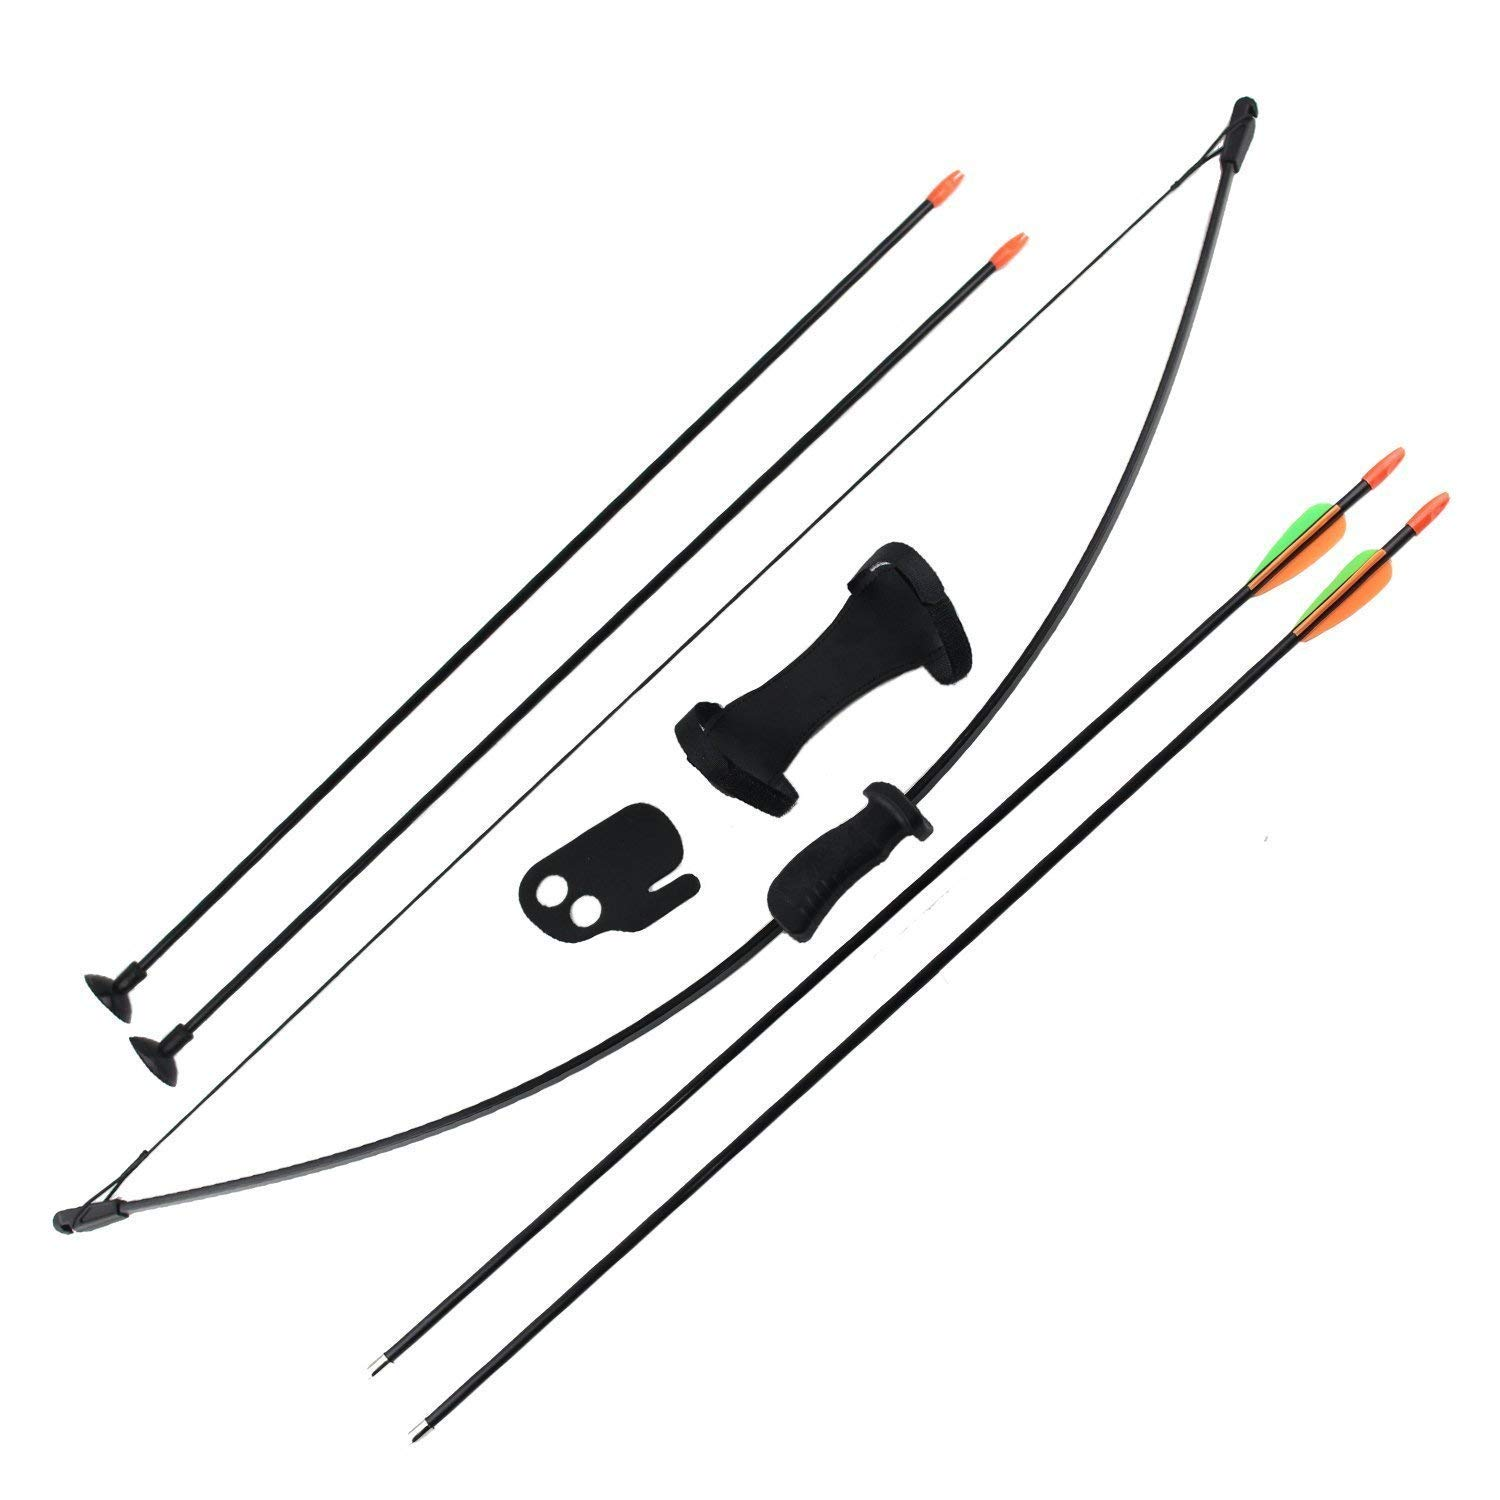 SinoArt Archery Bow and Arrow Set for Kids Children Youth Outdoor Sports Game Hunting Toy Gift Bow Set with 4 Arrows 16 Lb